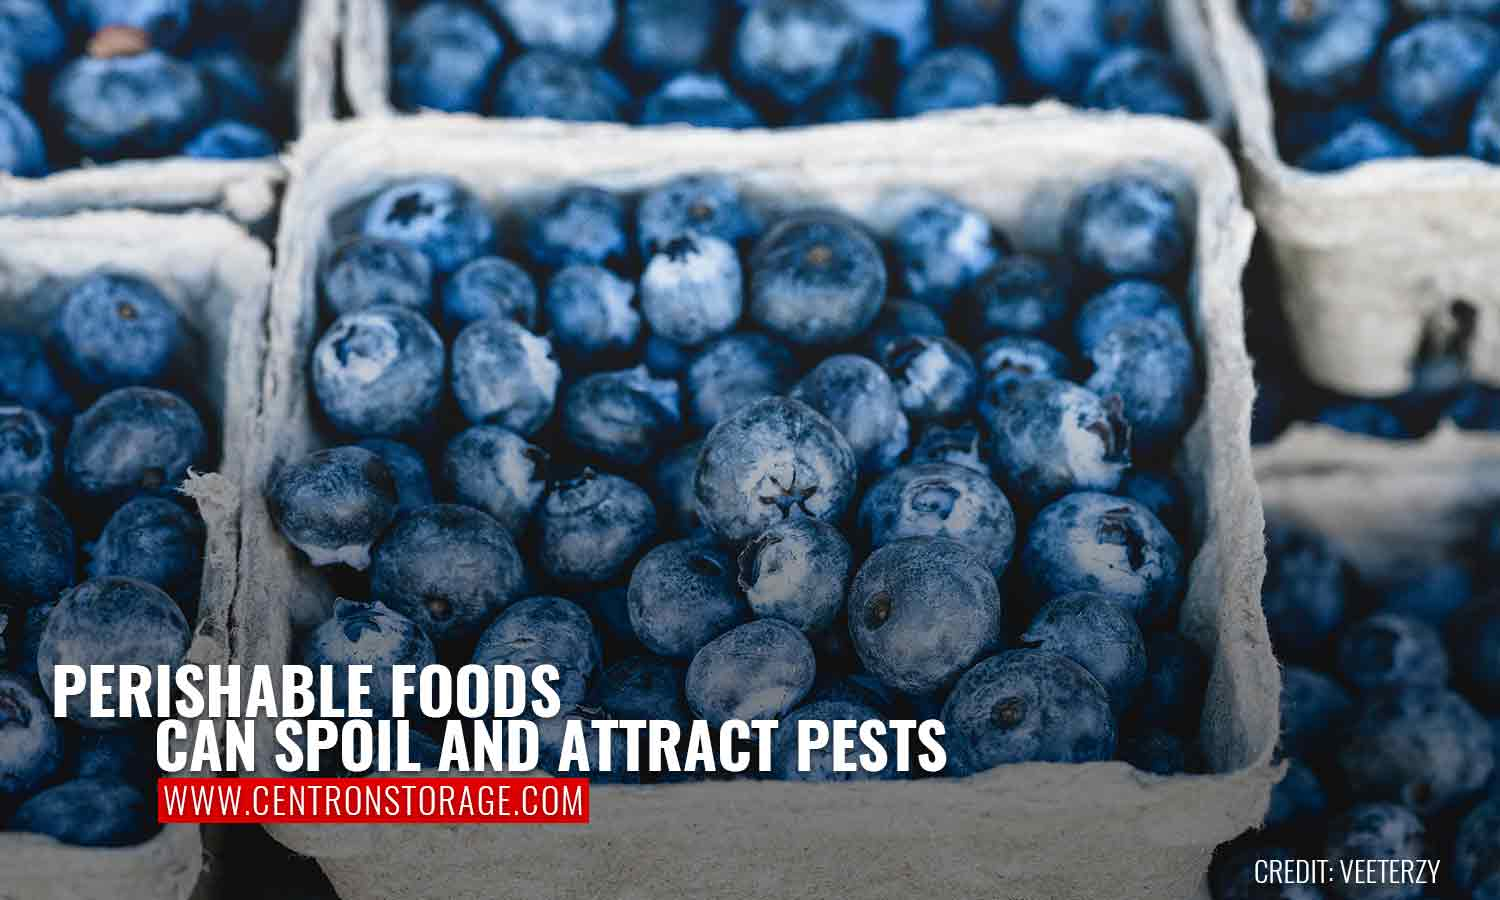 Perishable foods can spoil and attract pests